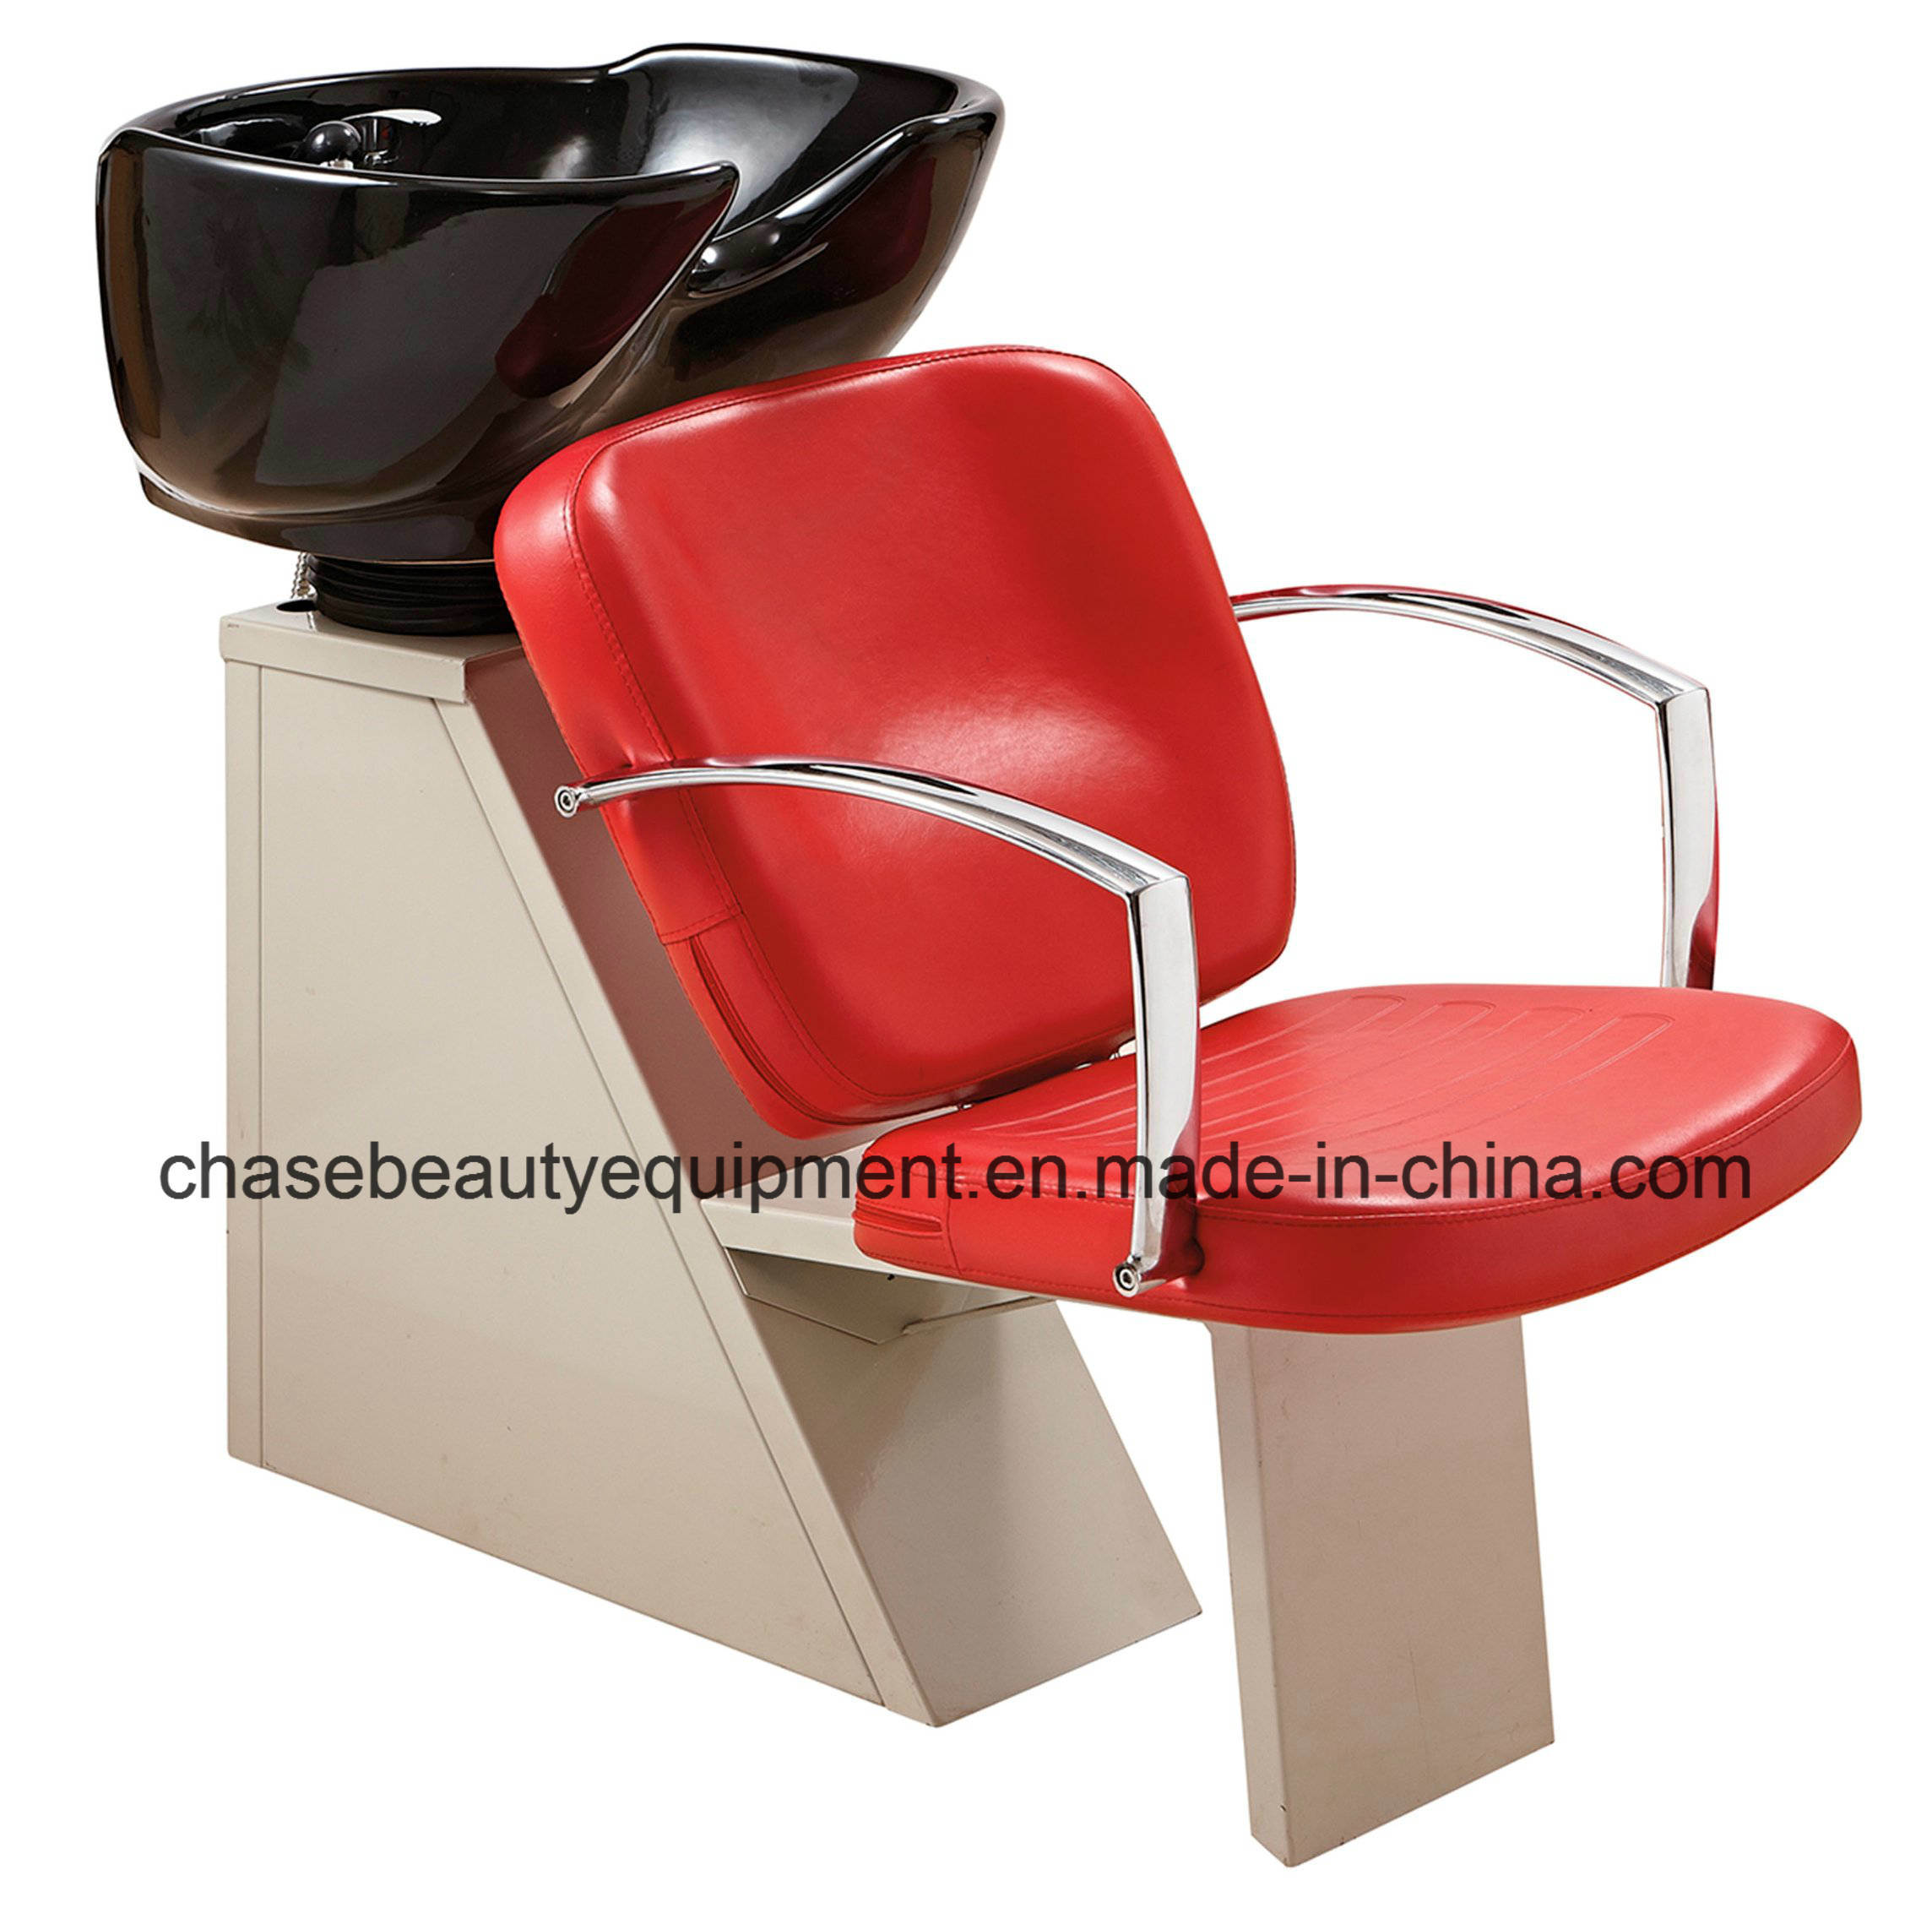 China Beauty Equipment Shampoo Chair for Hair Washing Shop Used